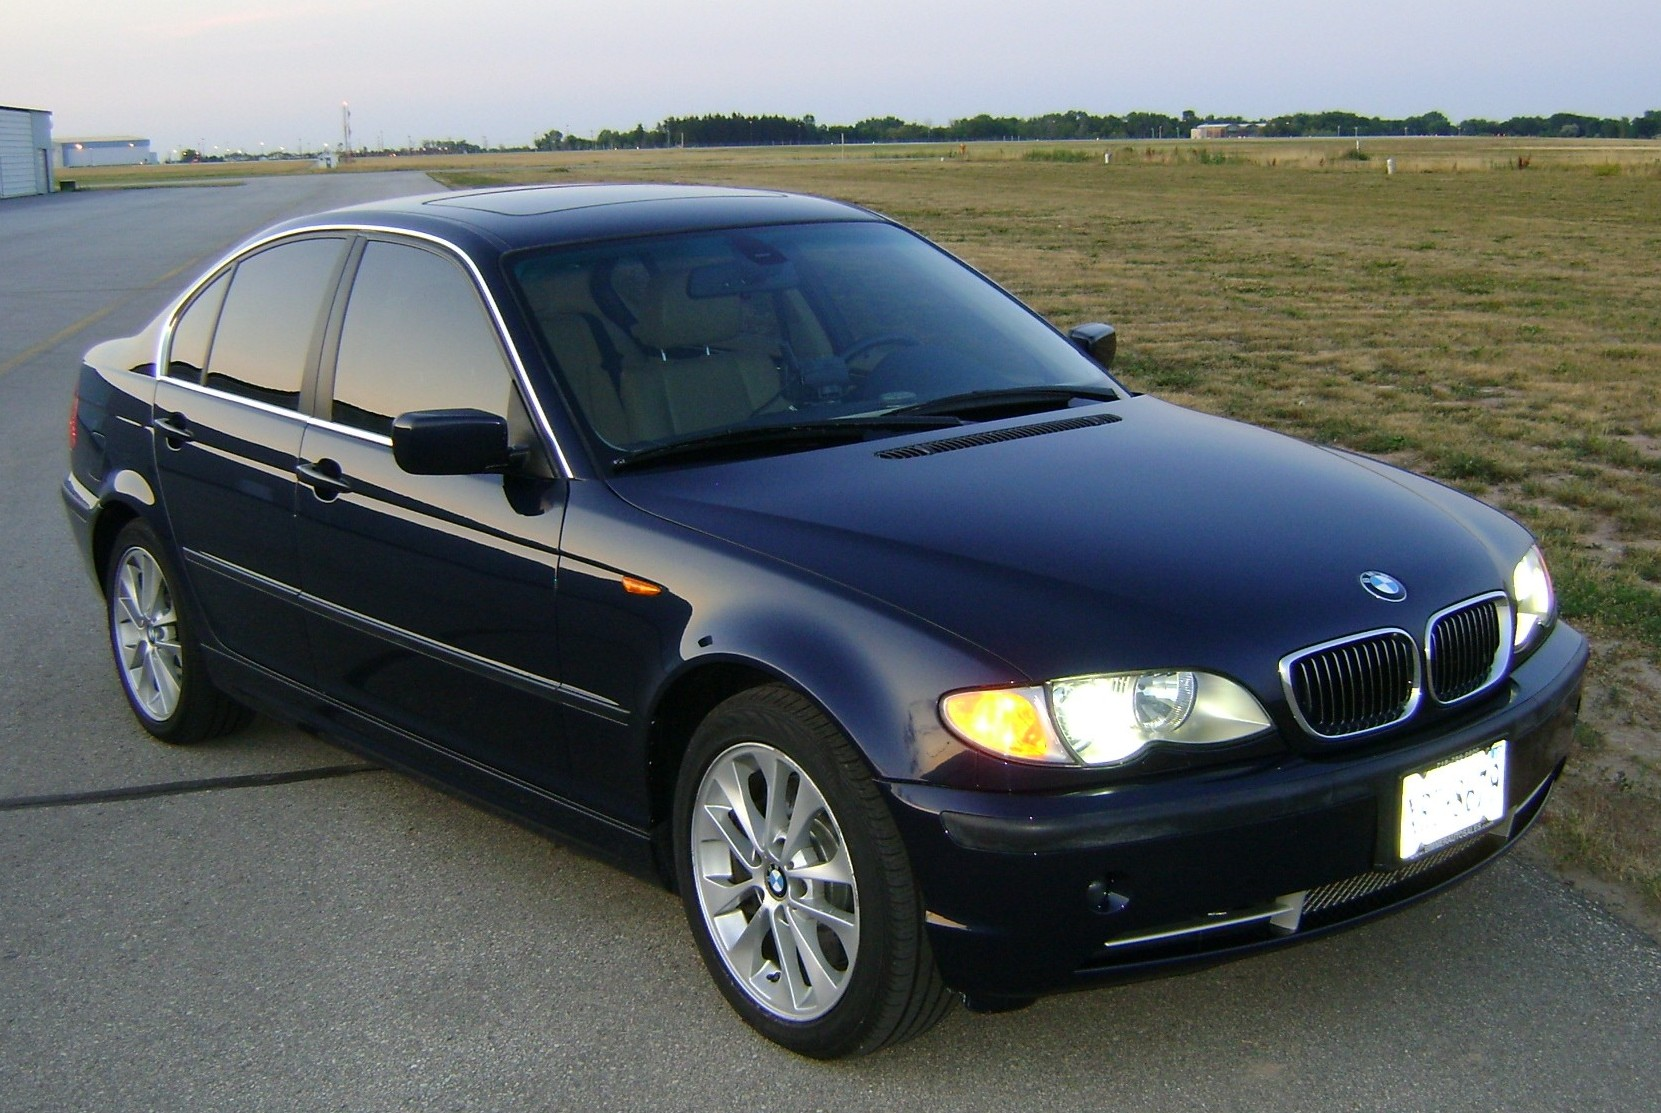 My bmw rides projects 2003 e46 330xi